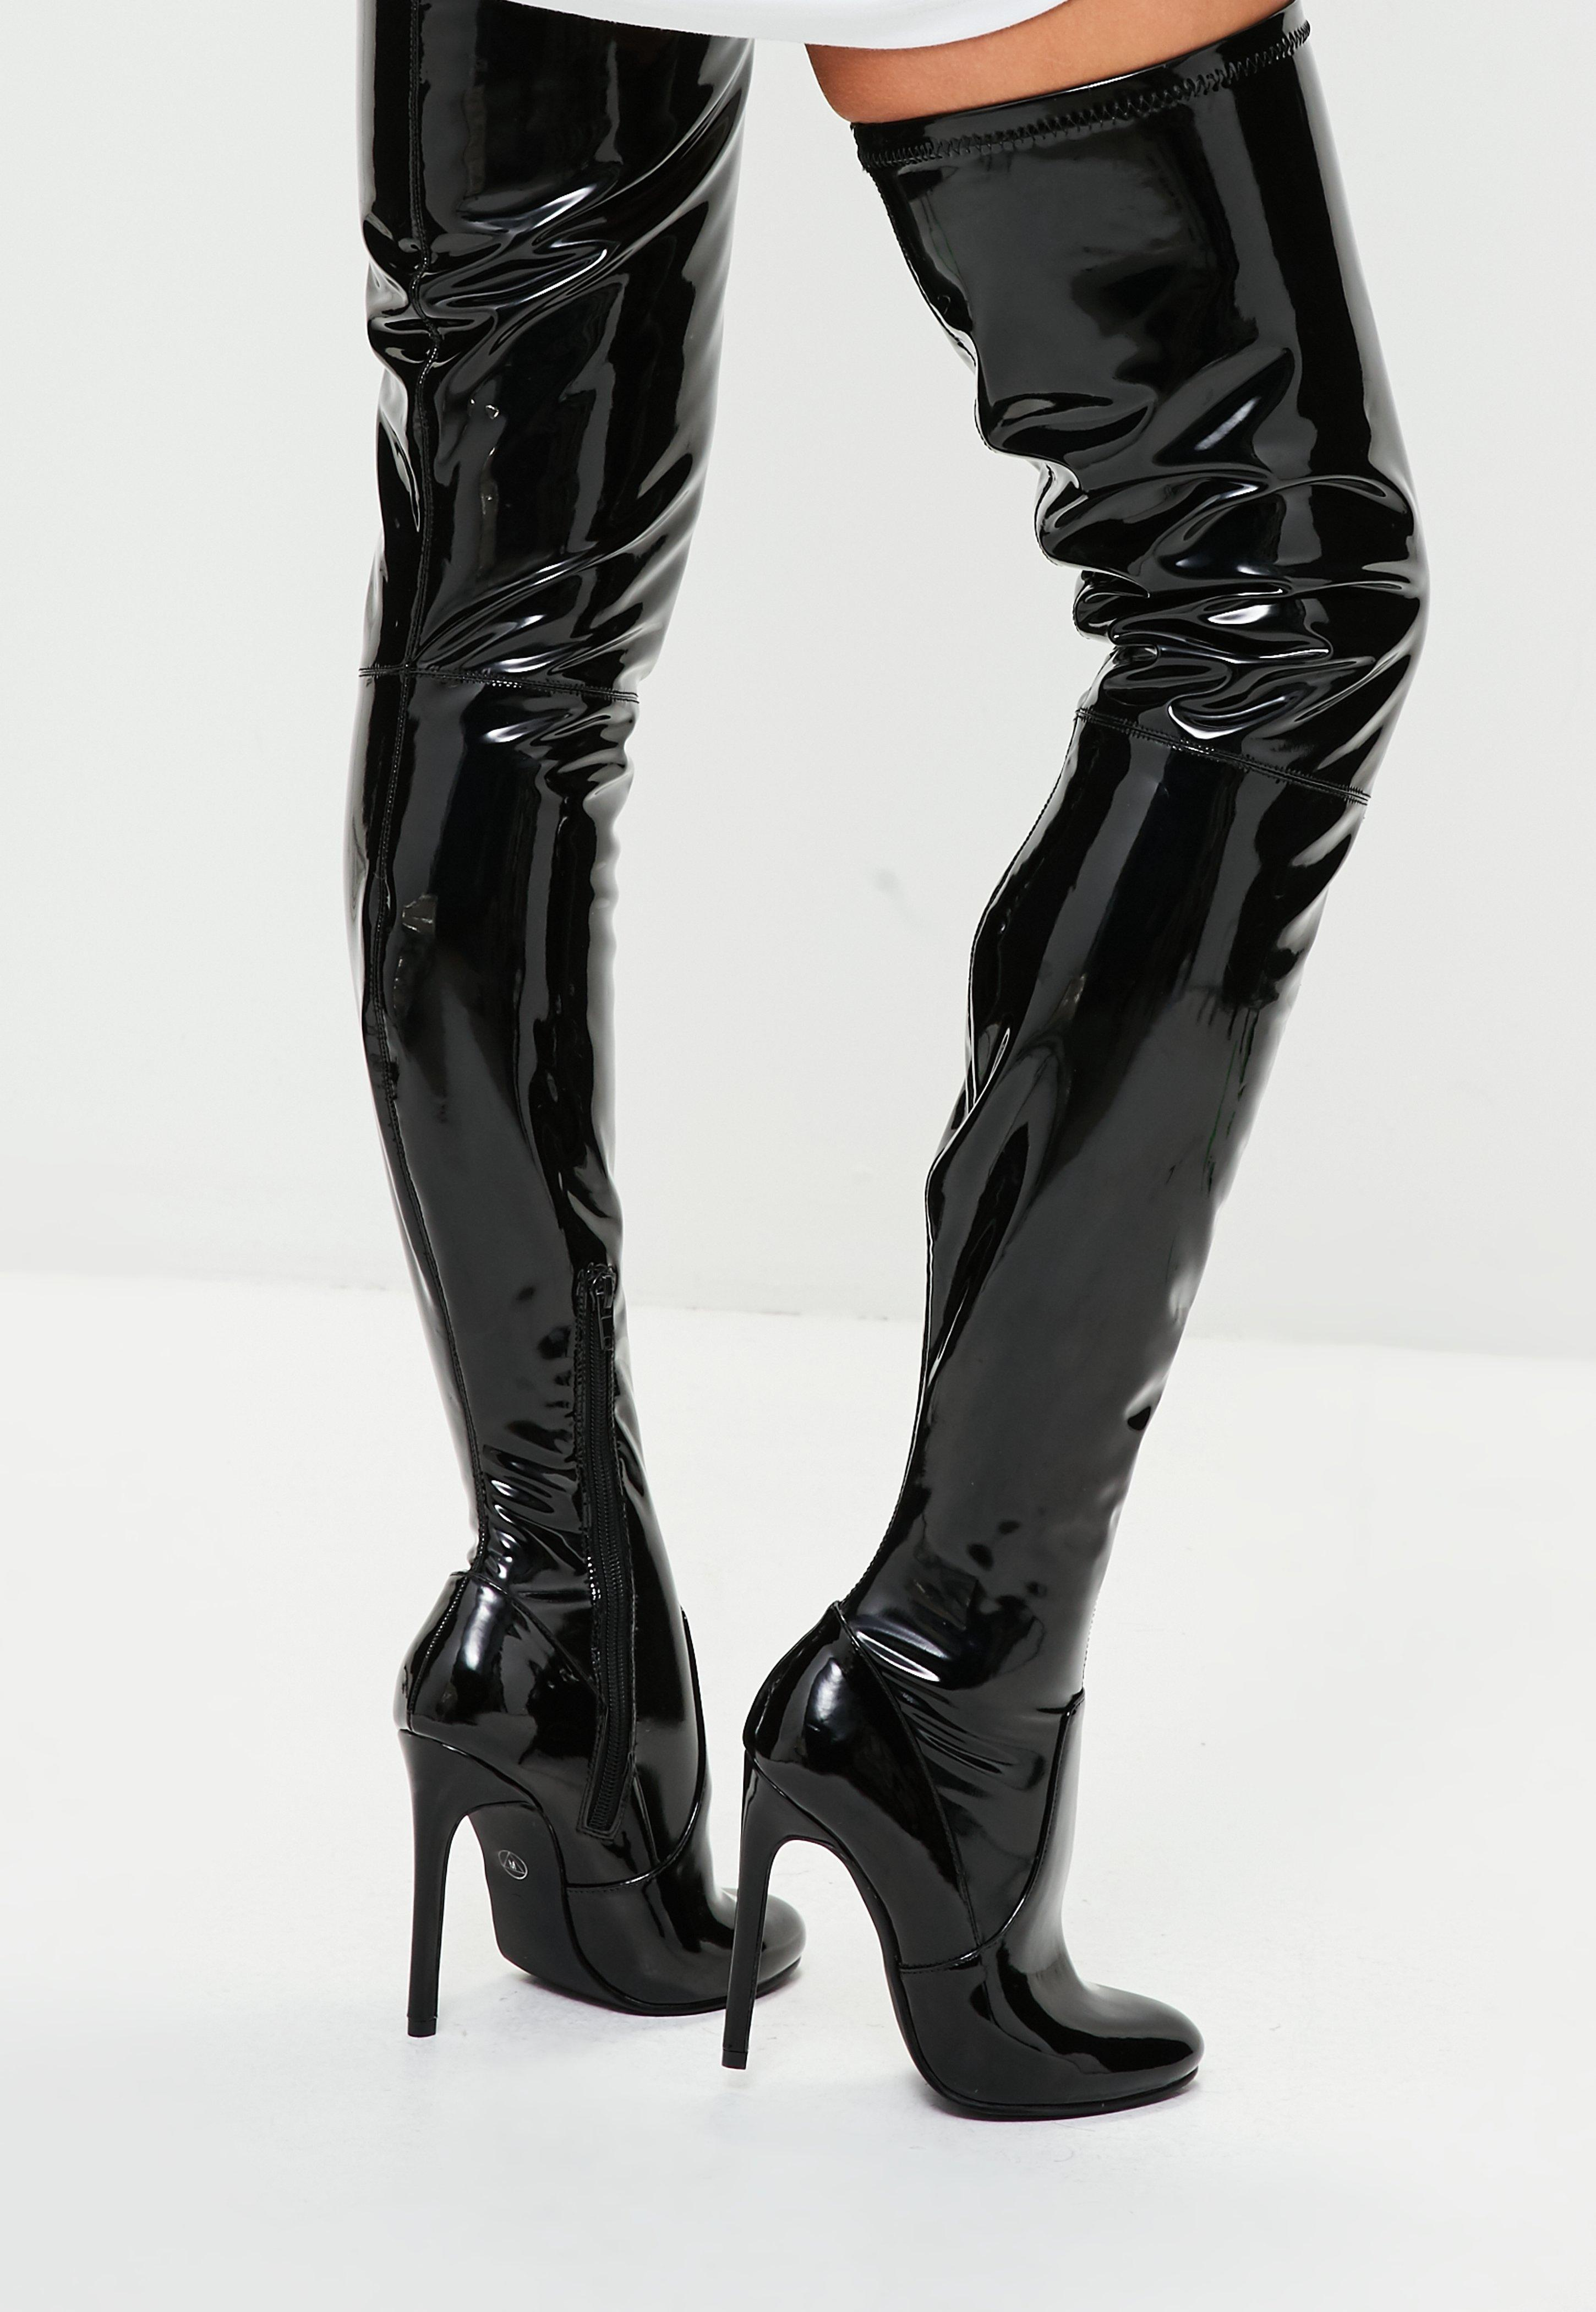 acd2078781a4 Lyst - Missguided Black Vinyl Thigh High Boots in Black